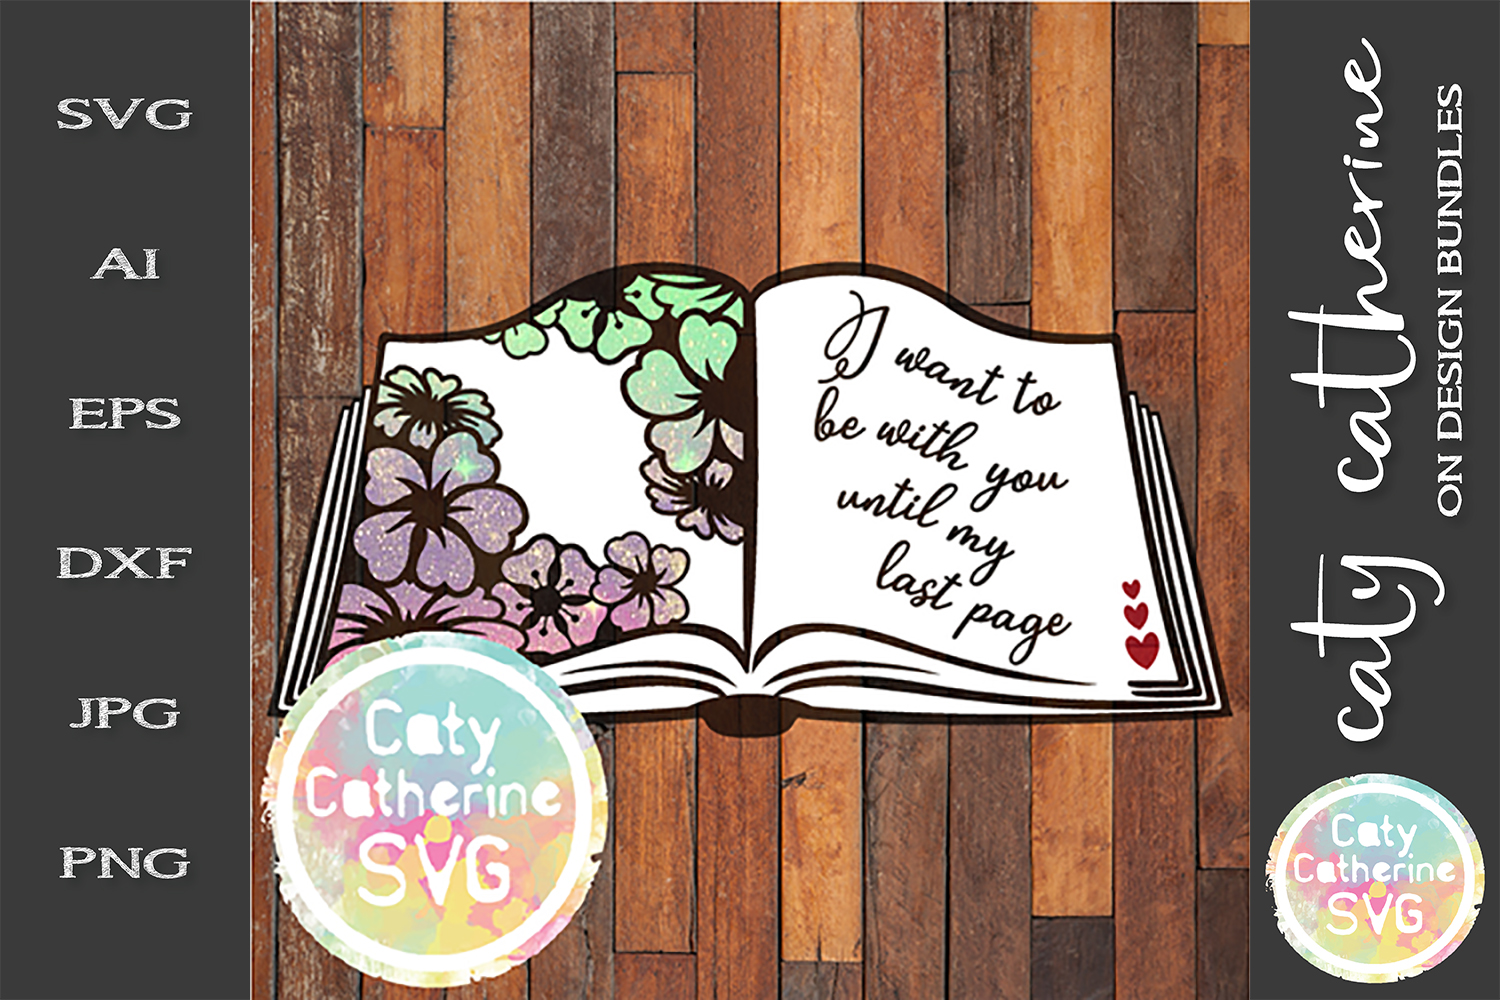 I Want To Be With You Until My Last Page SVG Cut File example image 1